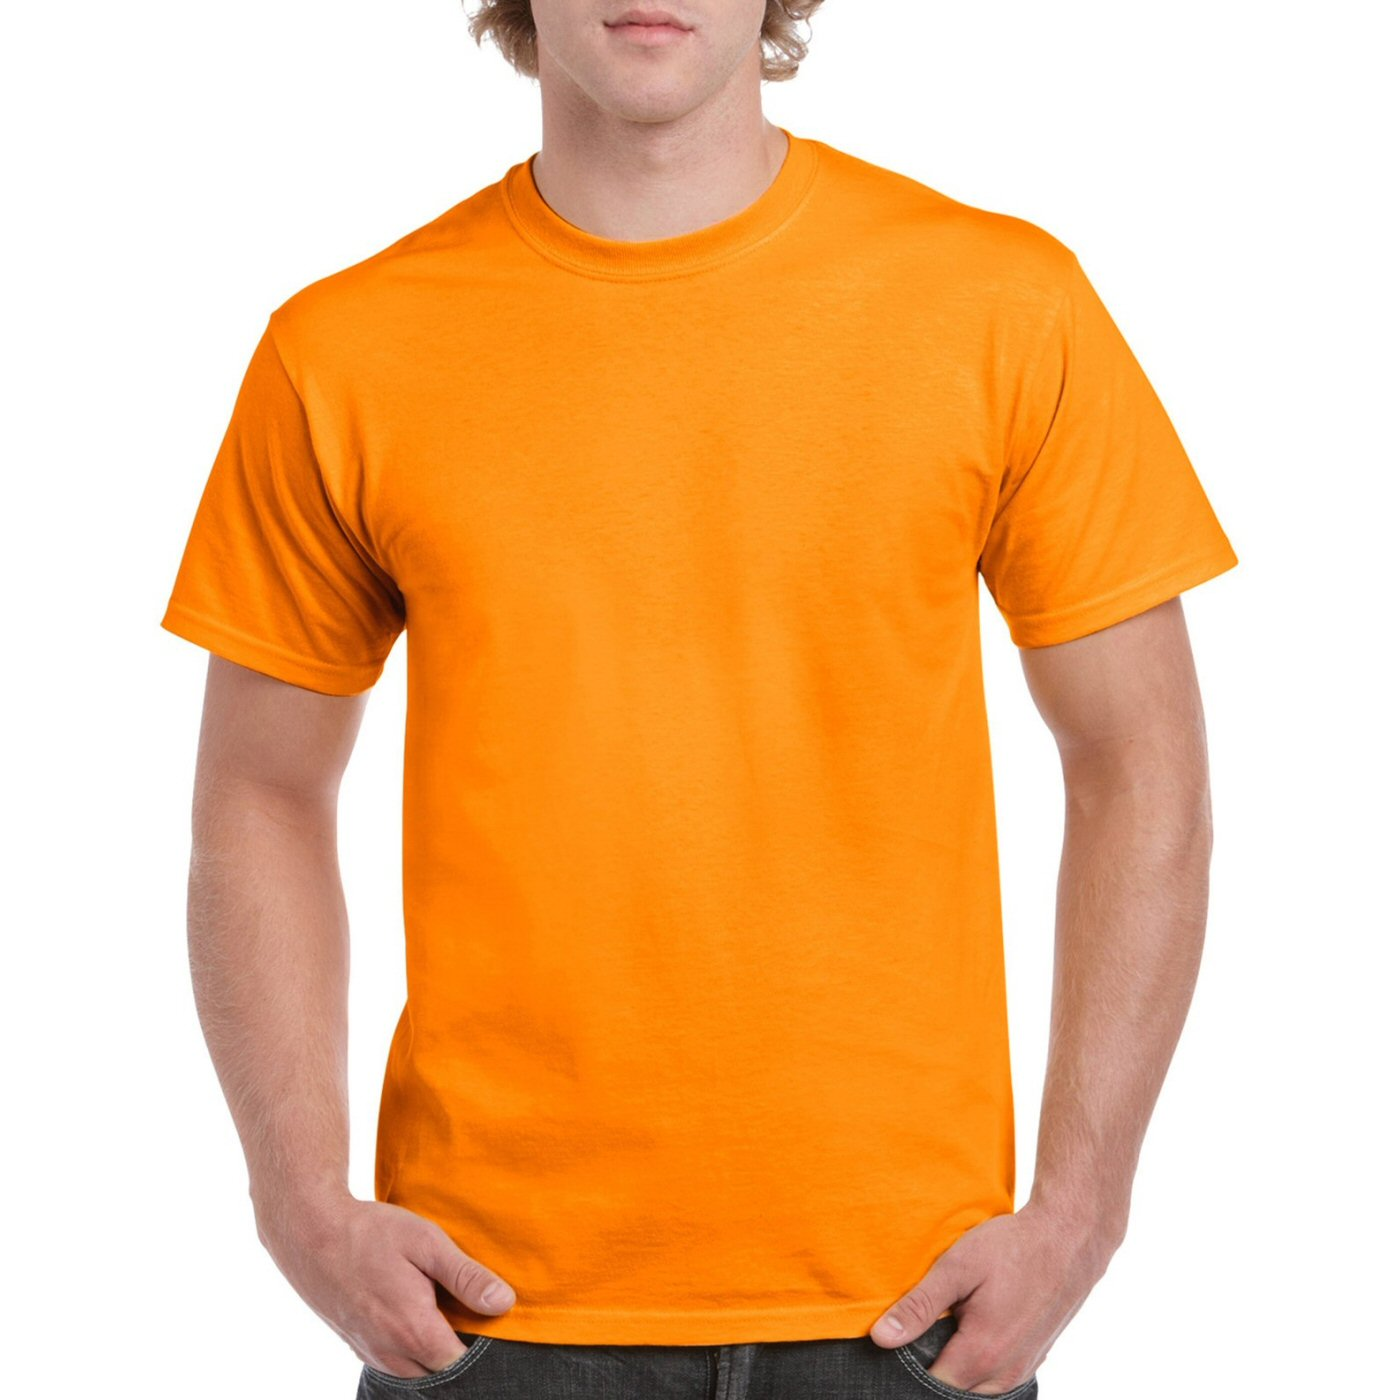 Dark Orange Plain Round Neck T-shirt image